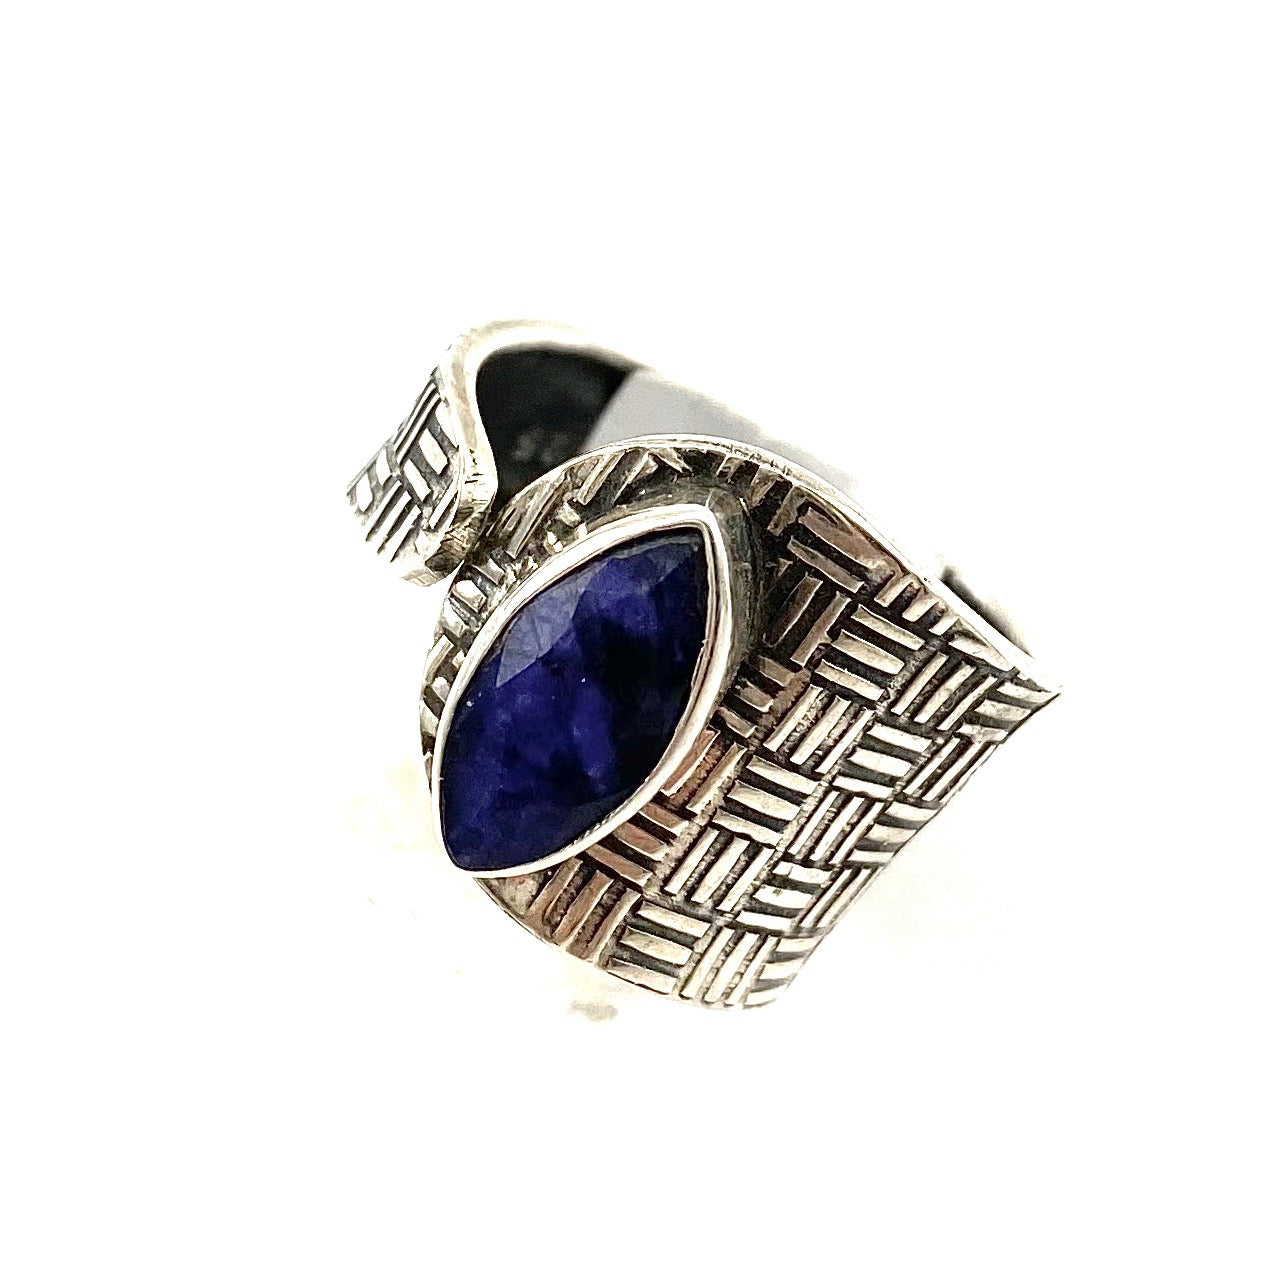 Sapphire Sterling Silver Adjustable Textured Ring - Keja Designs Jewelry